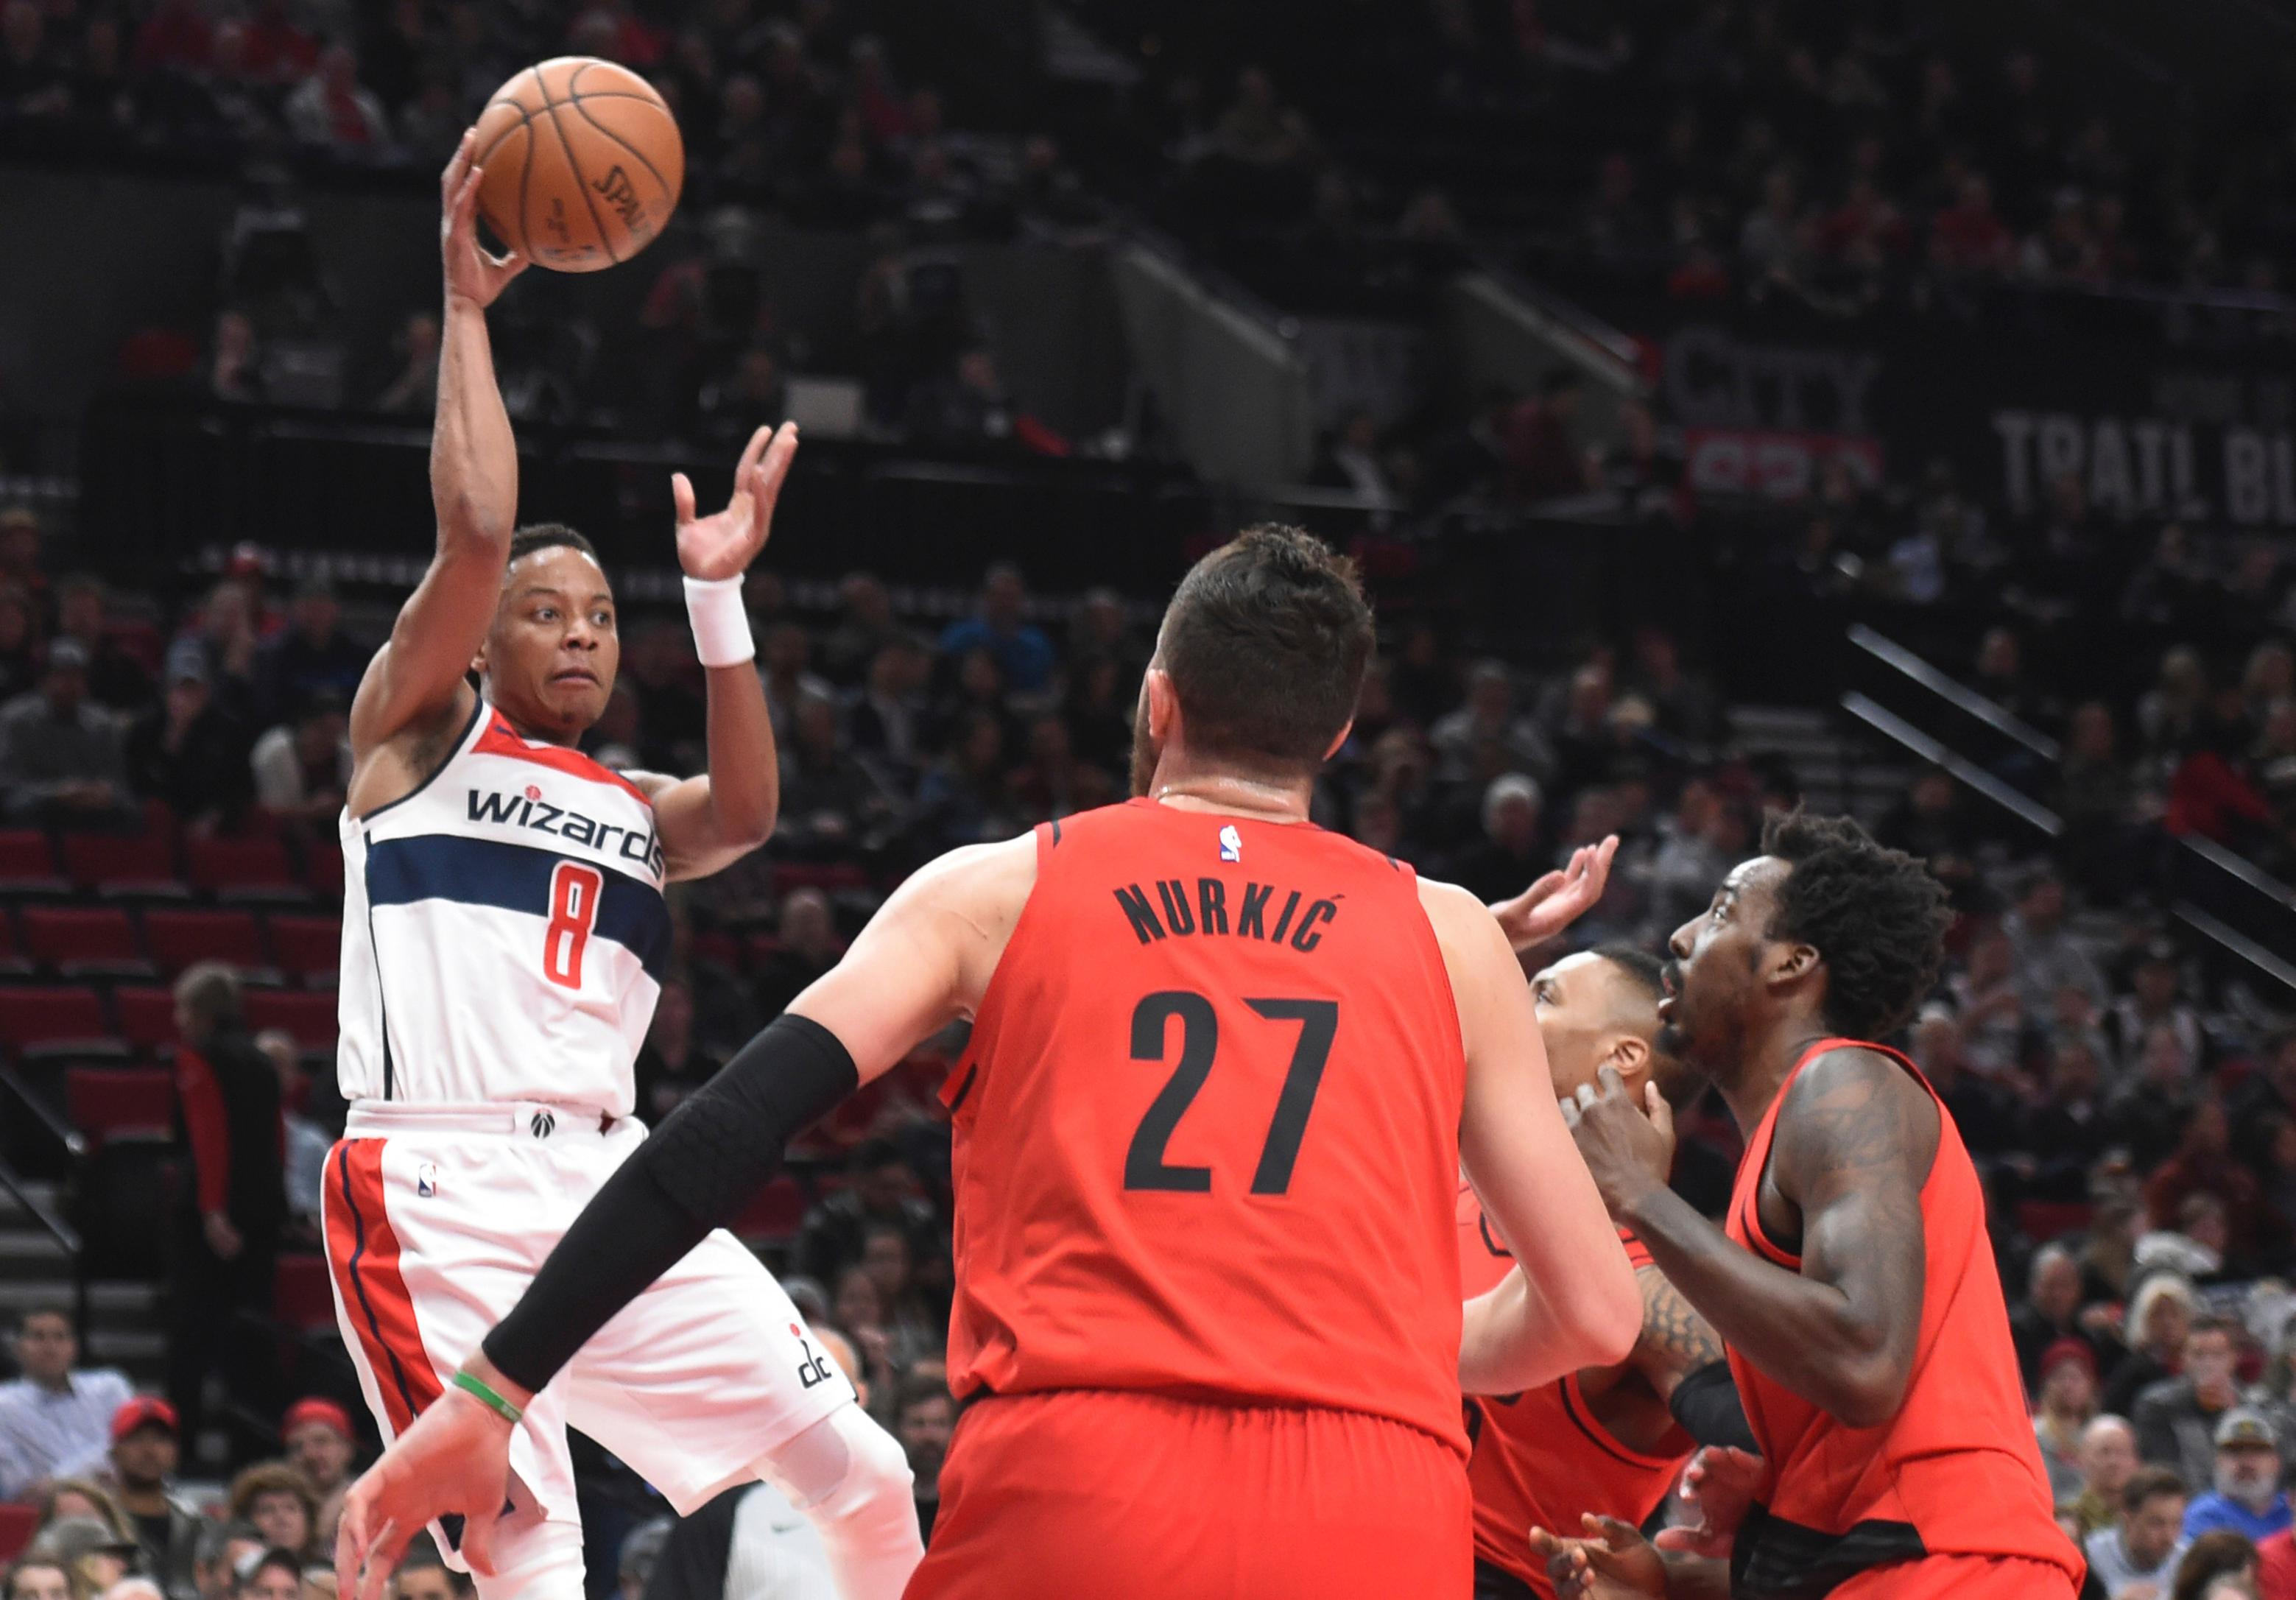 Washington Wizards guard Tim Frazier passes the ball over Portland Trail Blazers center Jusuf Nurkic during the first half of an NBA basketball game in Portland, Ore., Tuesday, Dec. 5, 2017. (AP Photo/Steve Dykes)